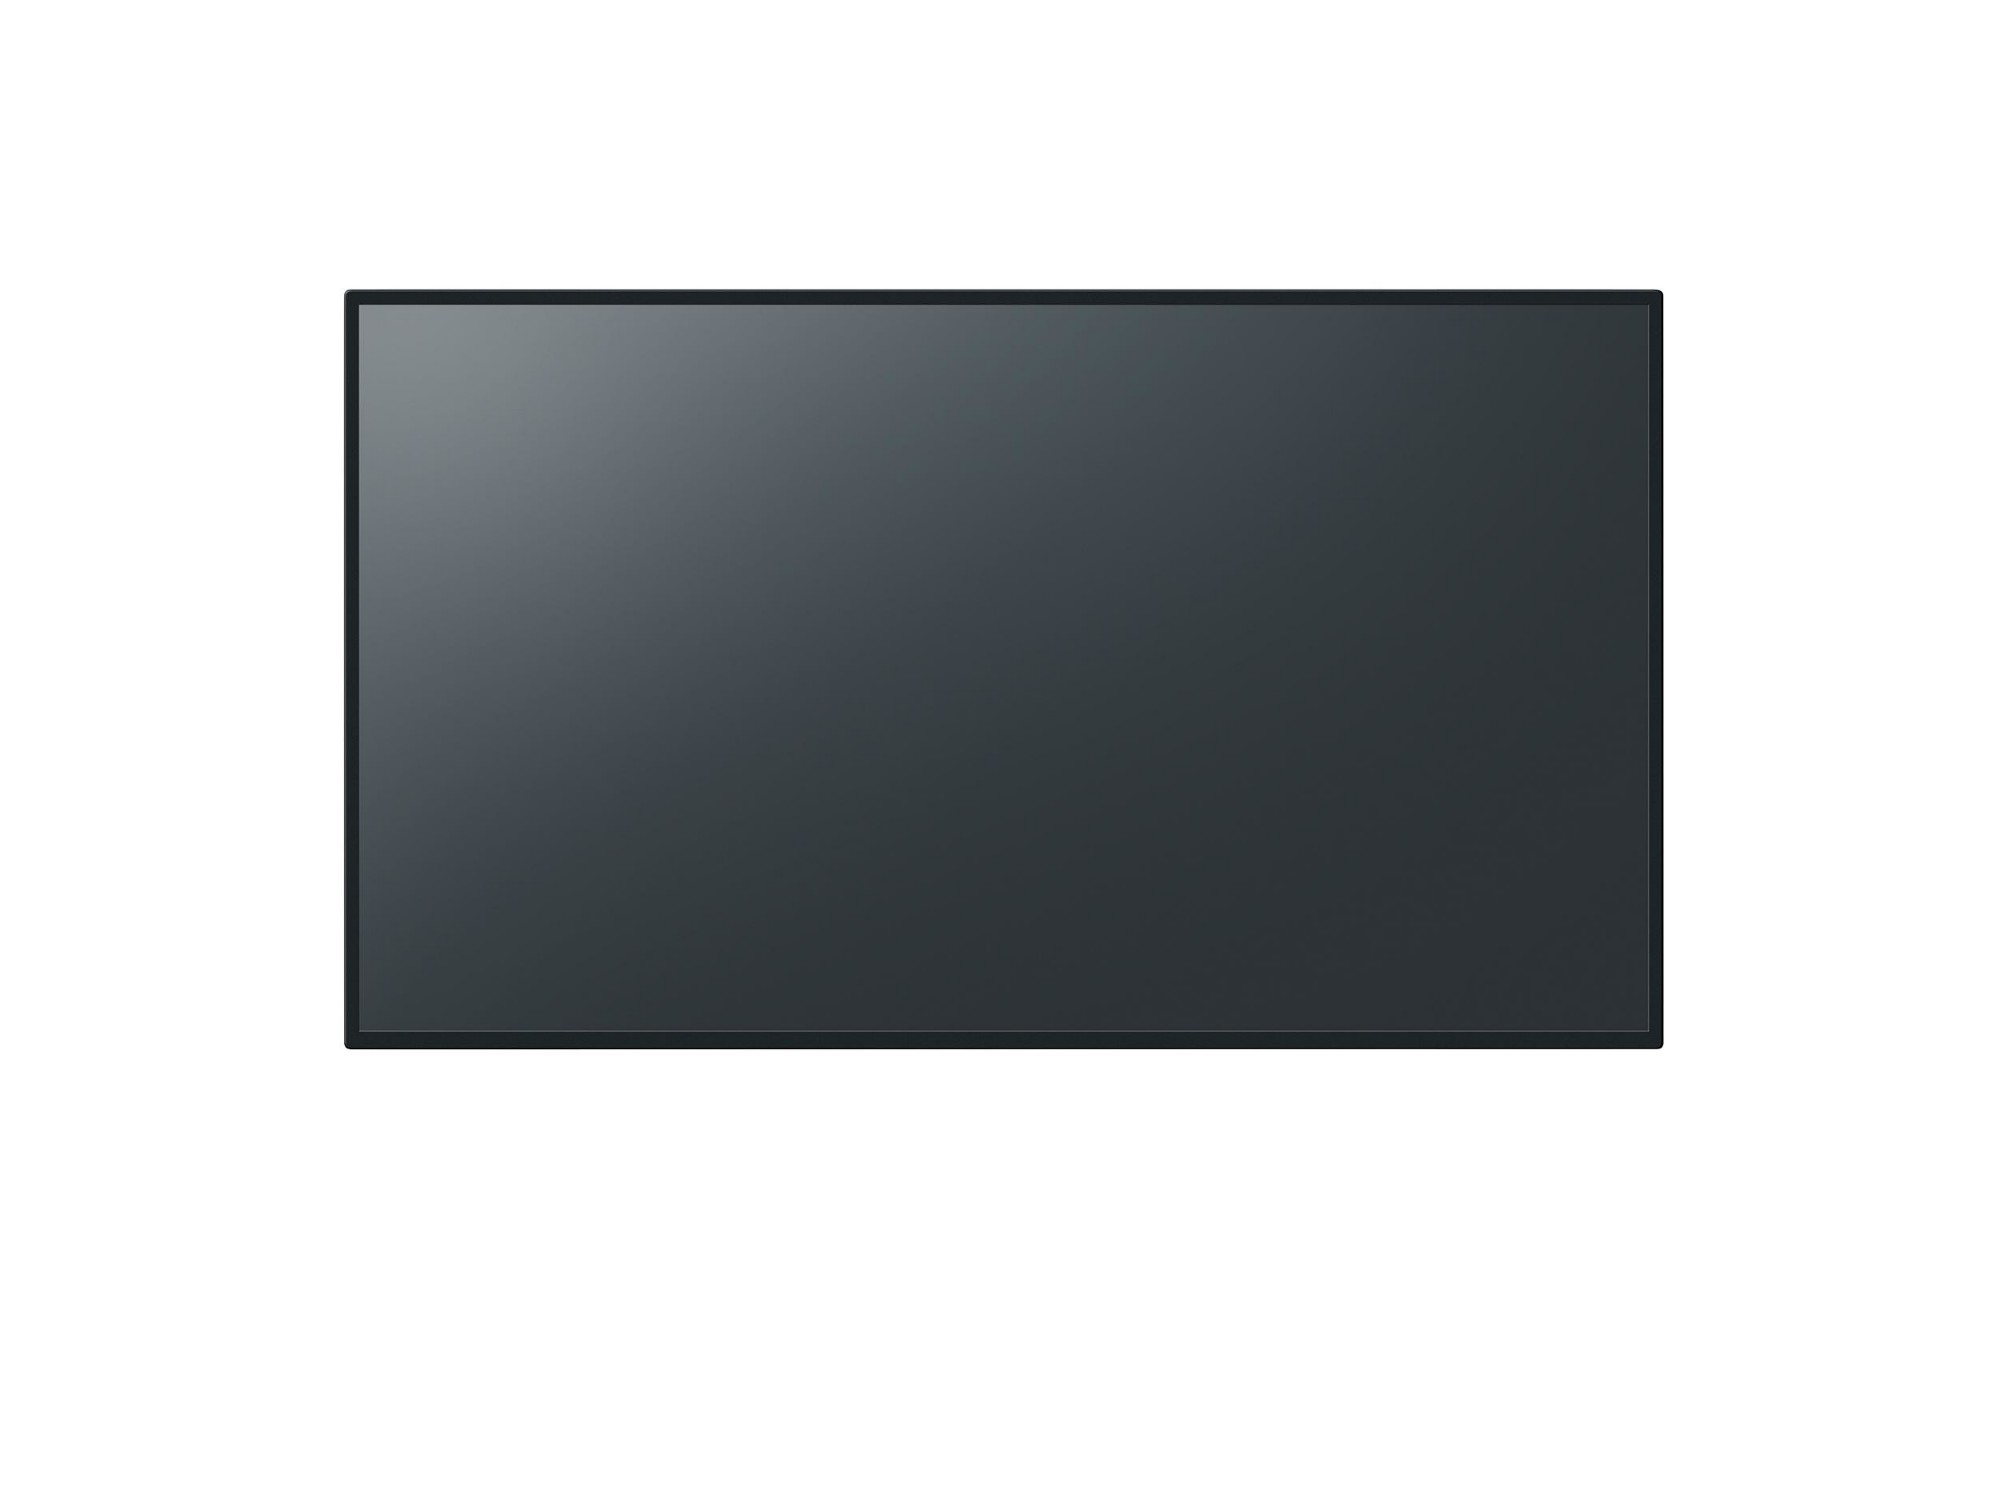 PANASONIC TH-48LFE8E TH-48LFE8 DIGITAL SIGNAGE FLAT PANEL 48